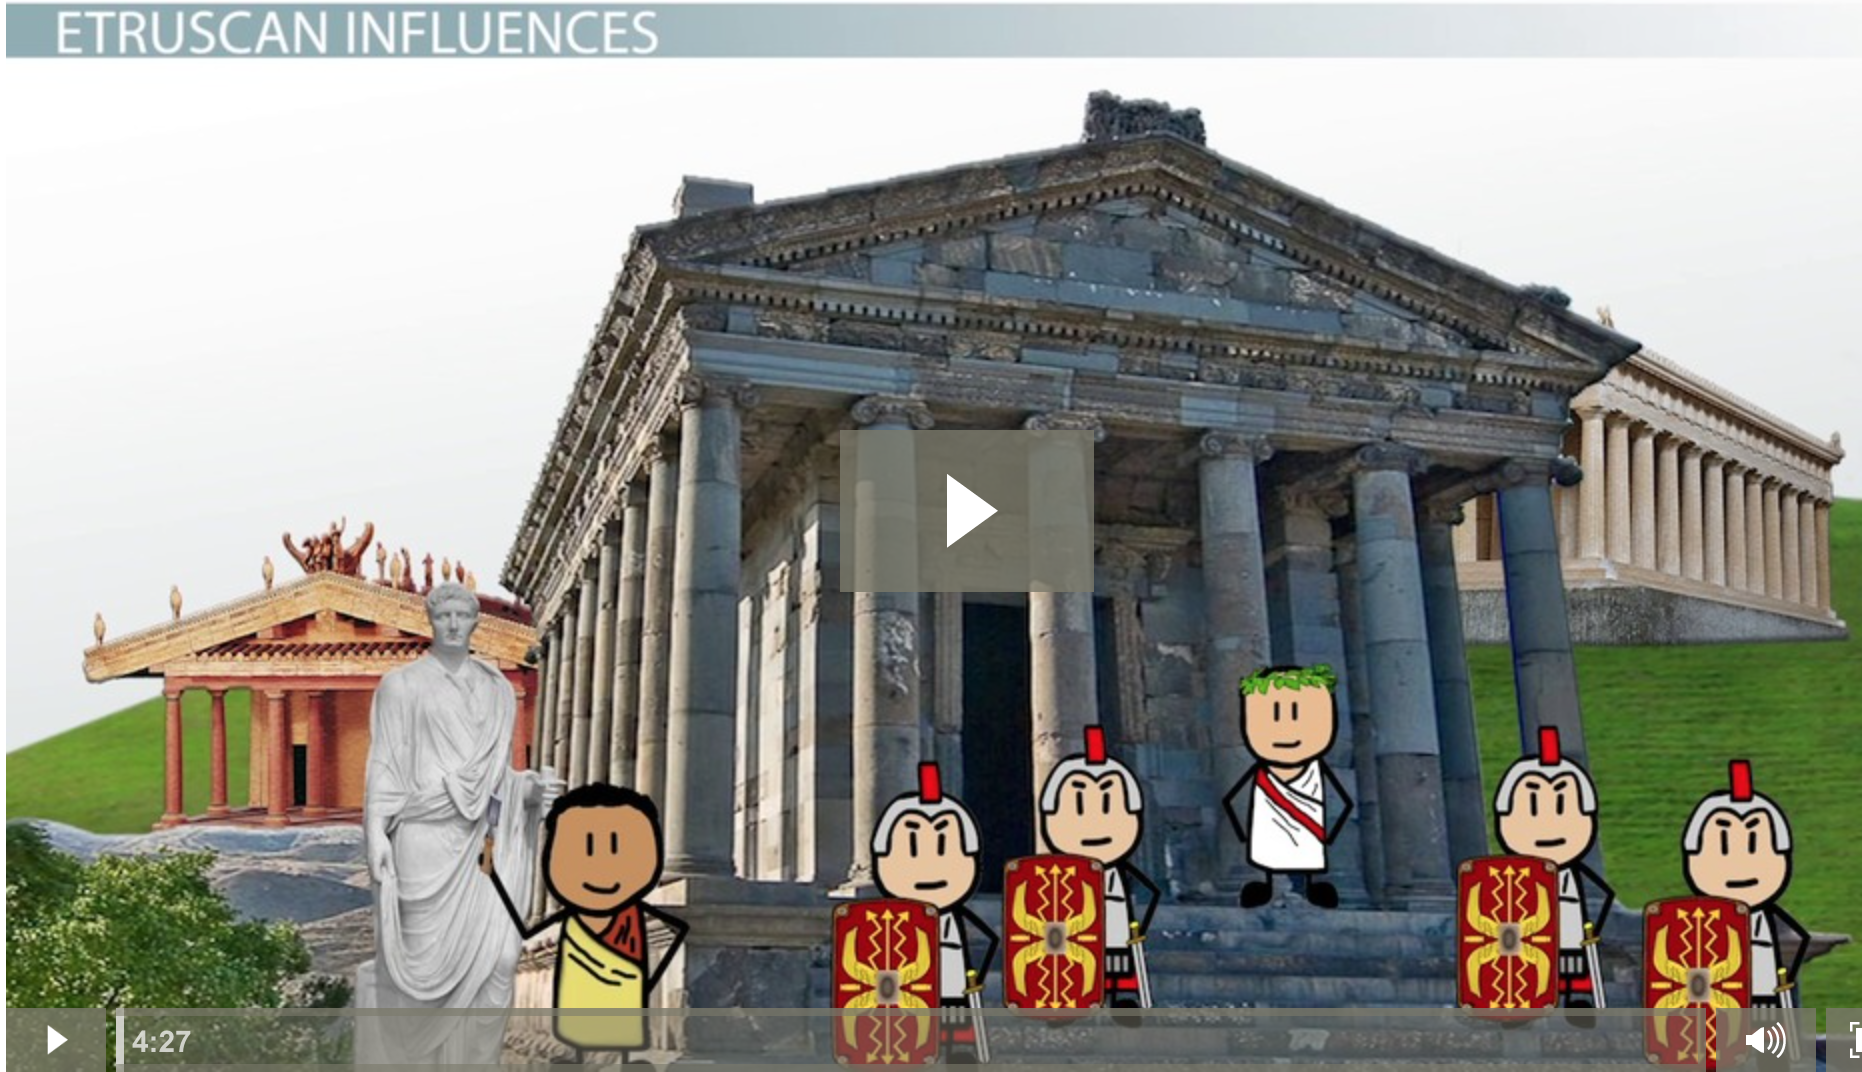 impact of greece on rome essay While the societies of ancient greece and rome had some similarities, the differences between greece (athens) and rome are important to recognize.